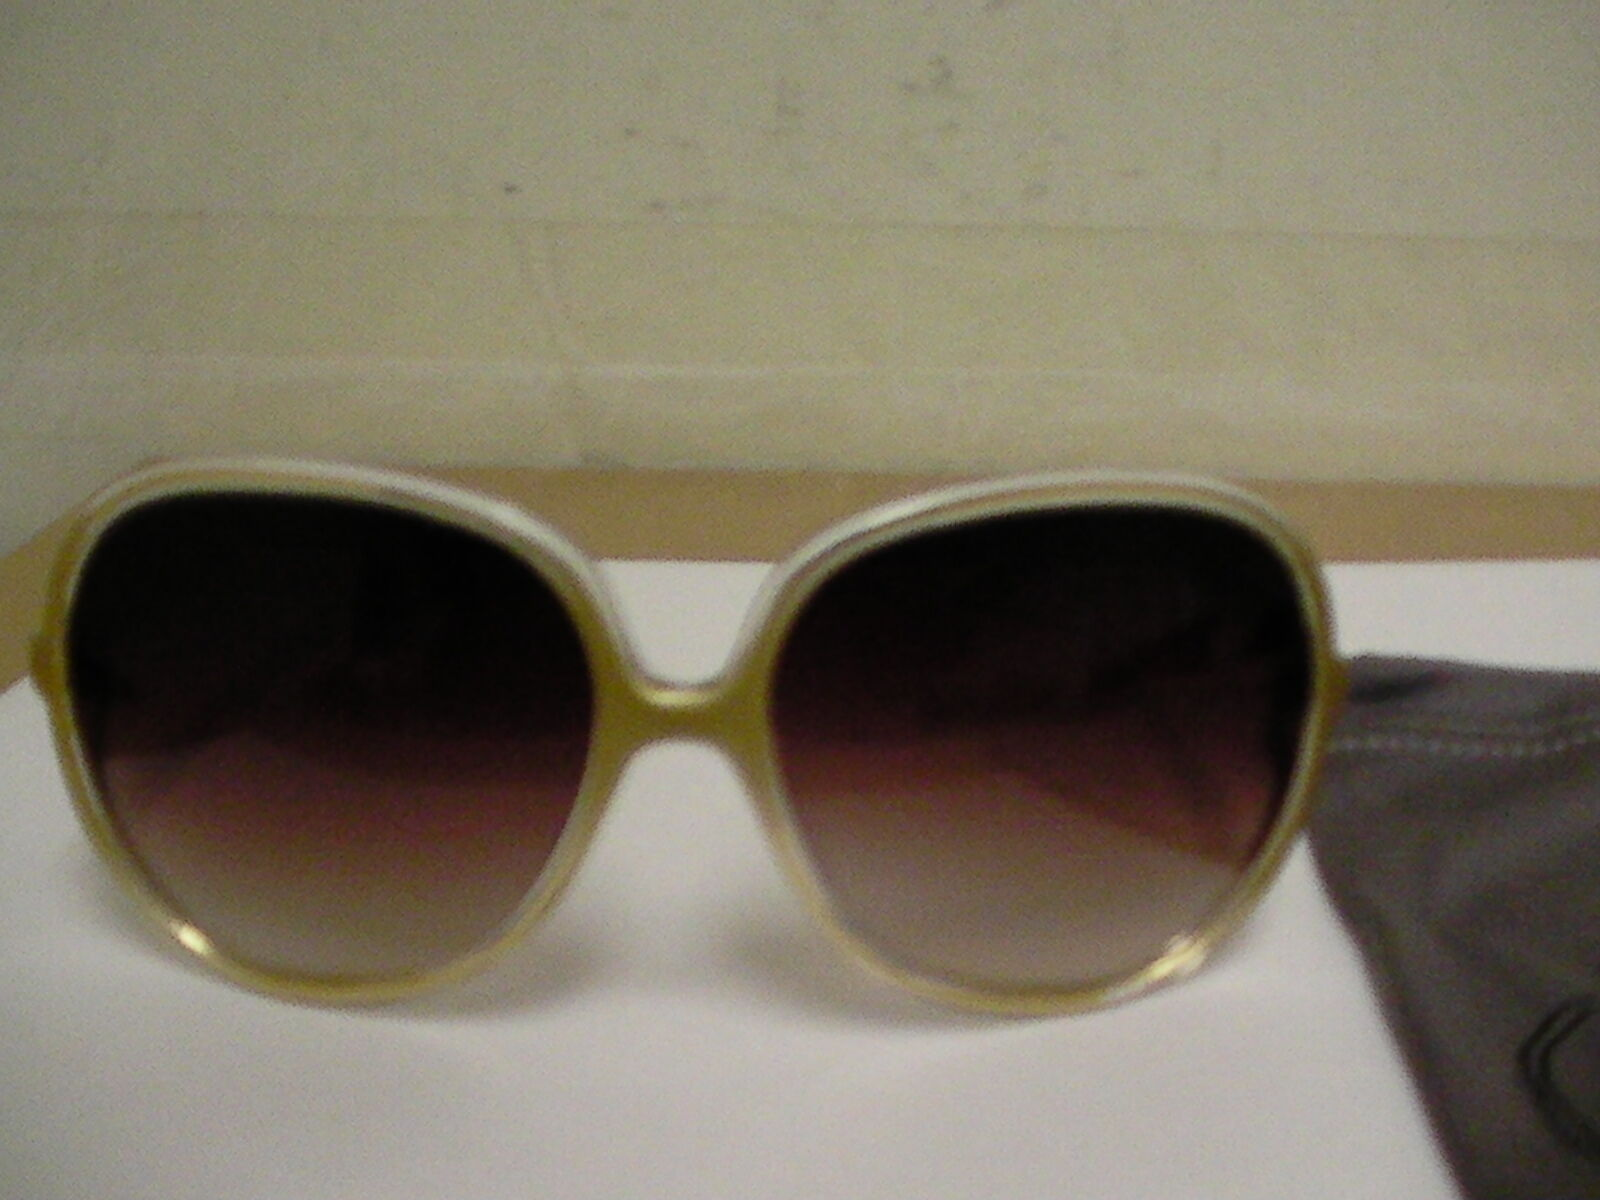 Oliver people women sunglasses Sofiane oval clear gold frame made in japan image 2